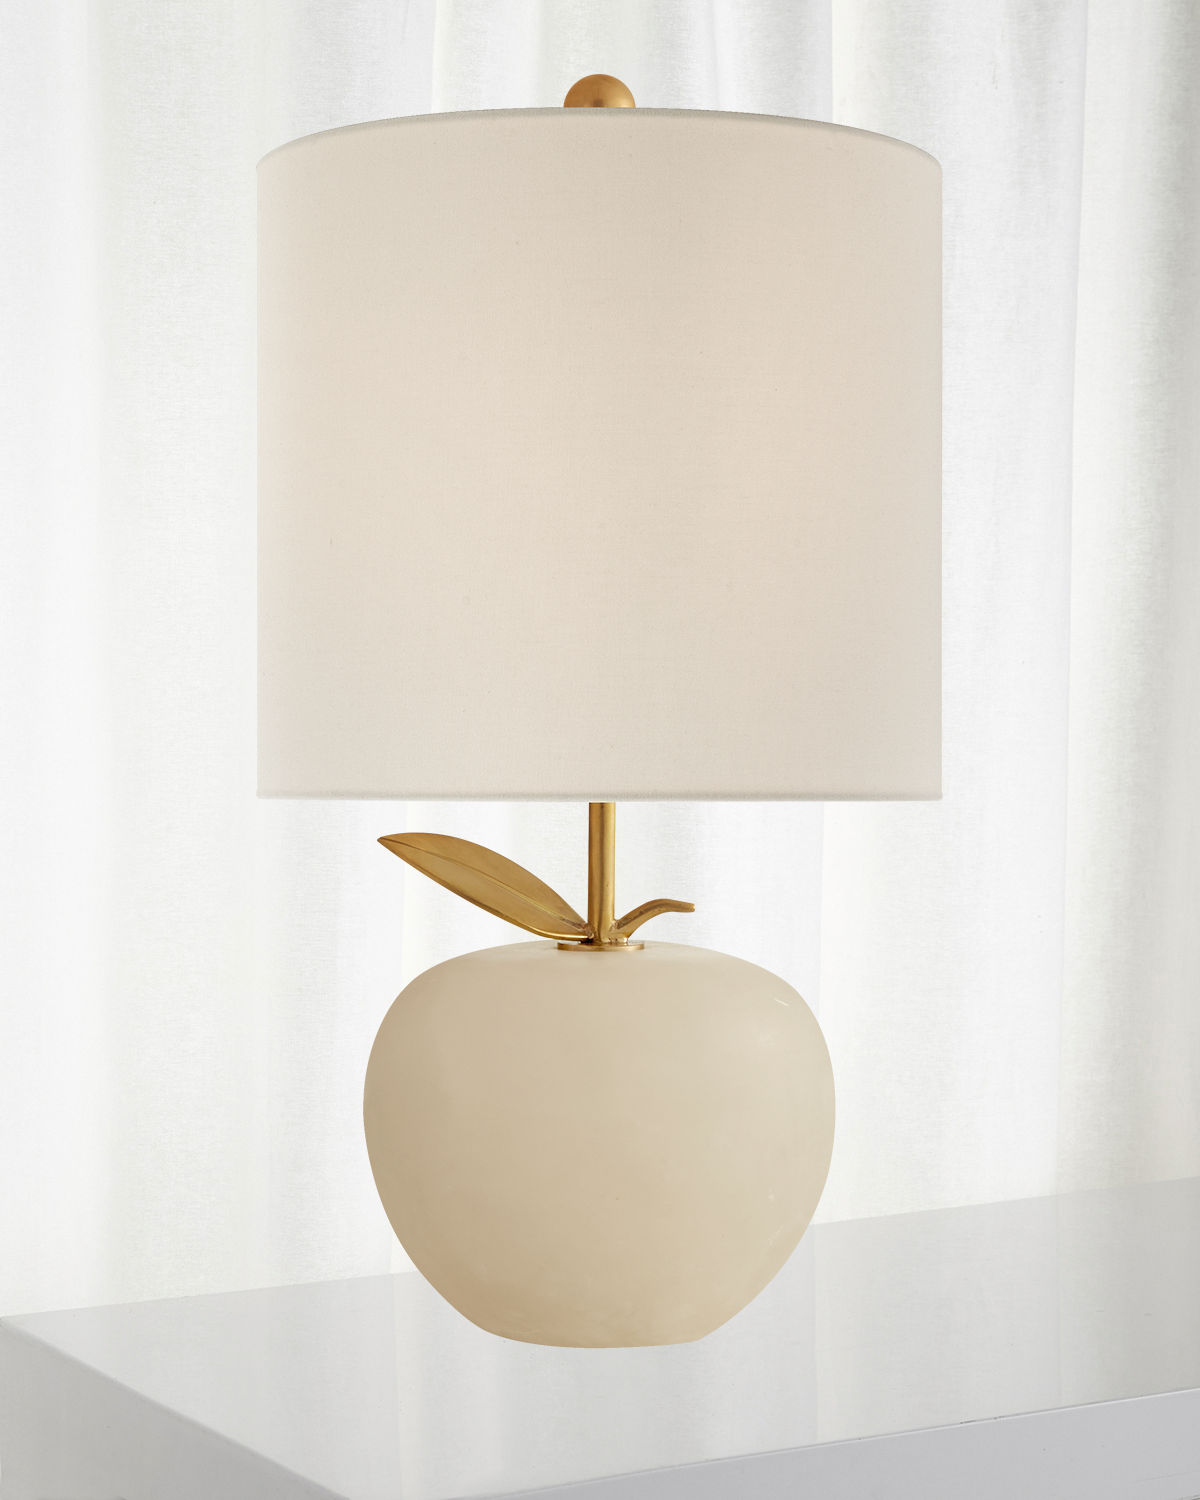 Kate Spade Lighting & lamps ORCHARD MINI ACCENT LAMP